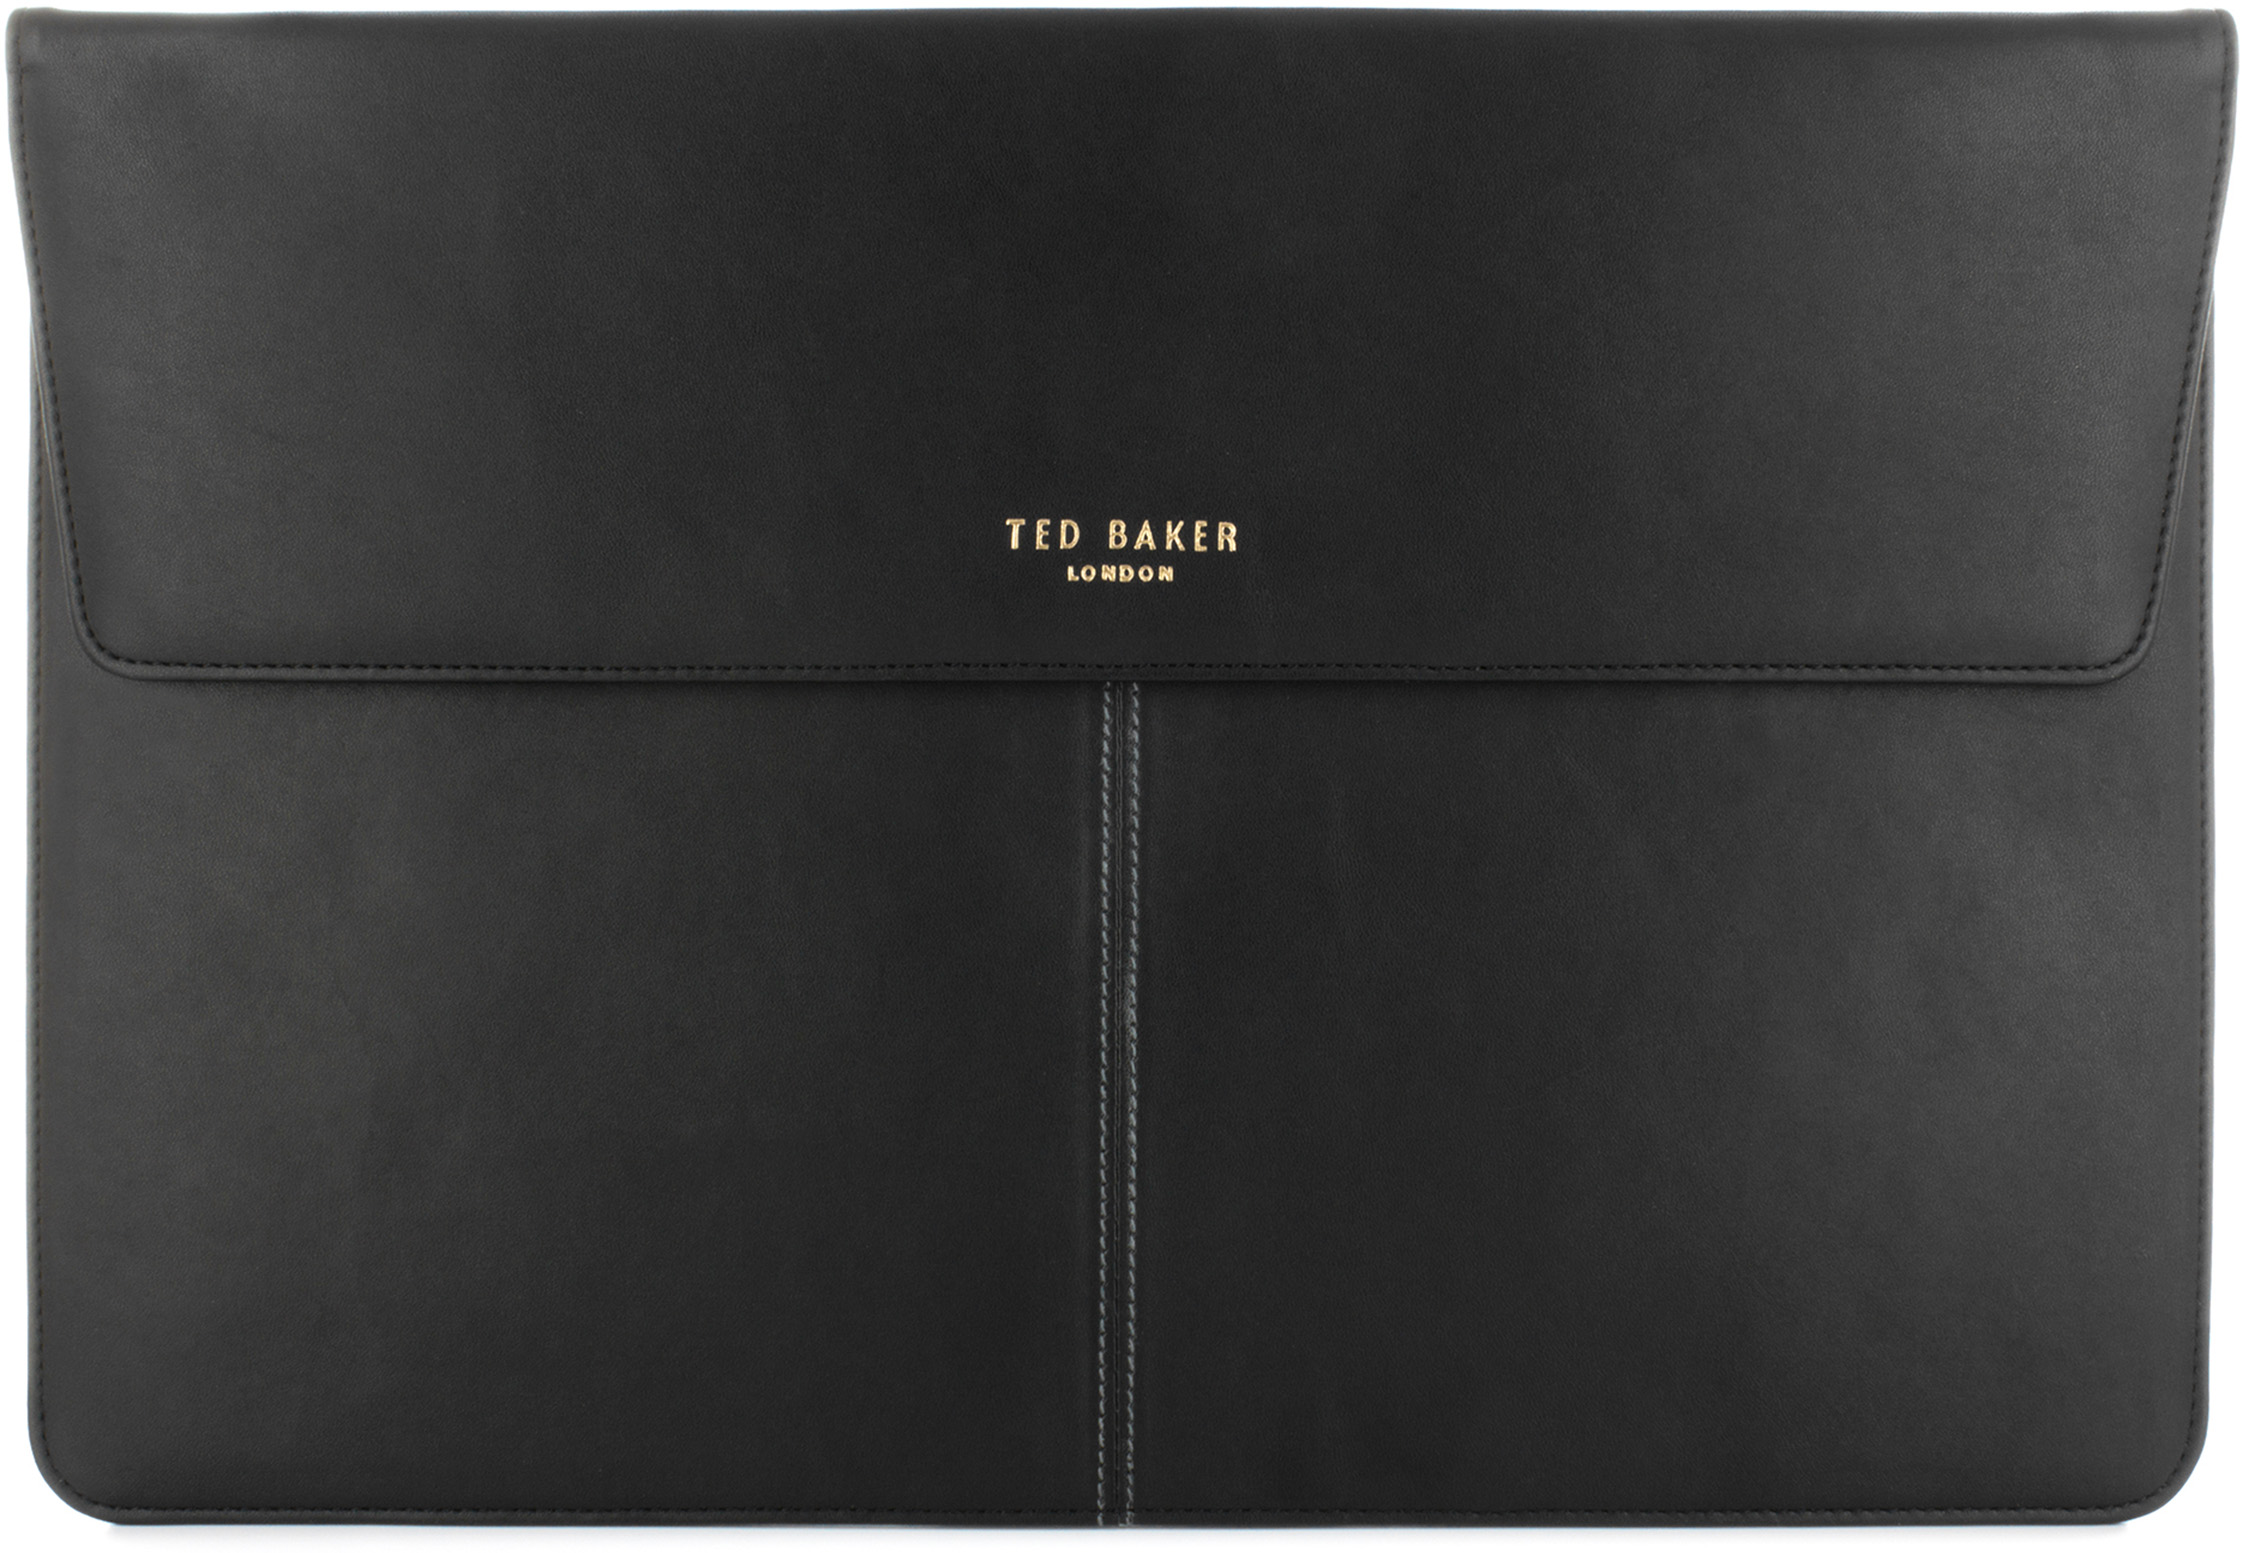 Ted Baker-hoes voor Surface Pro